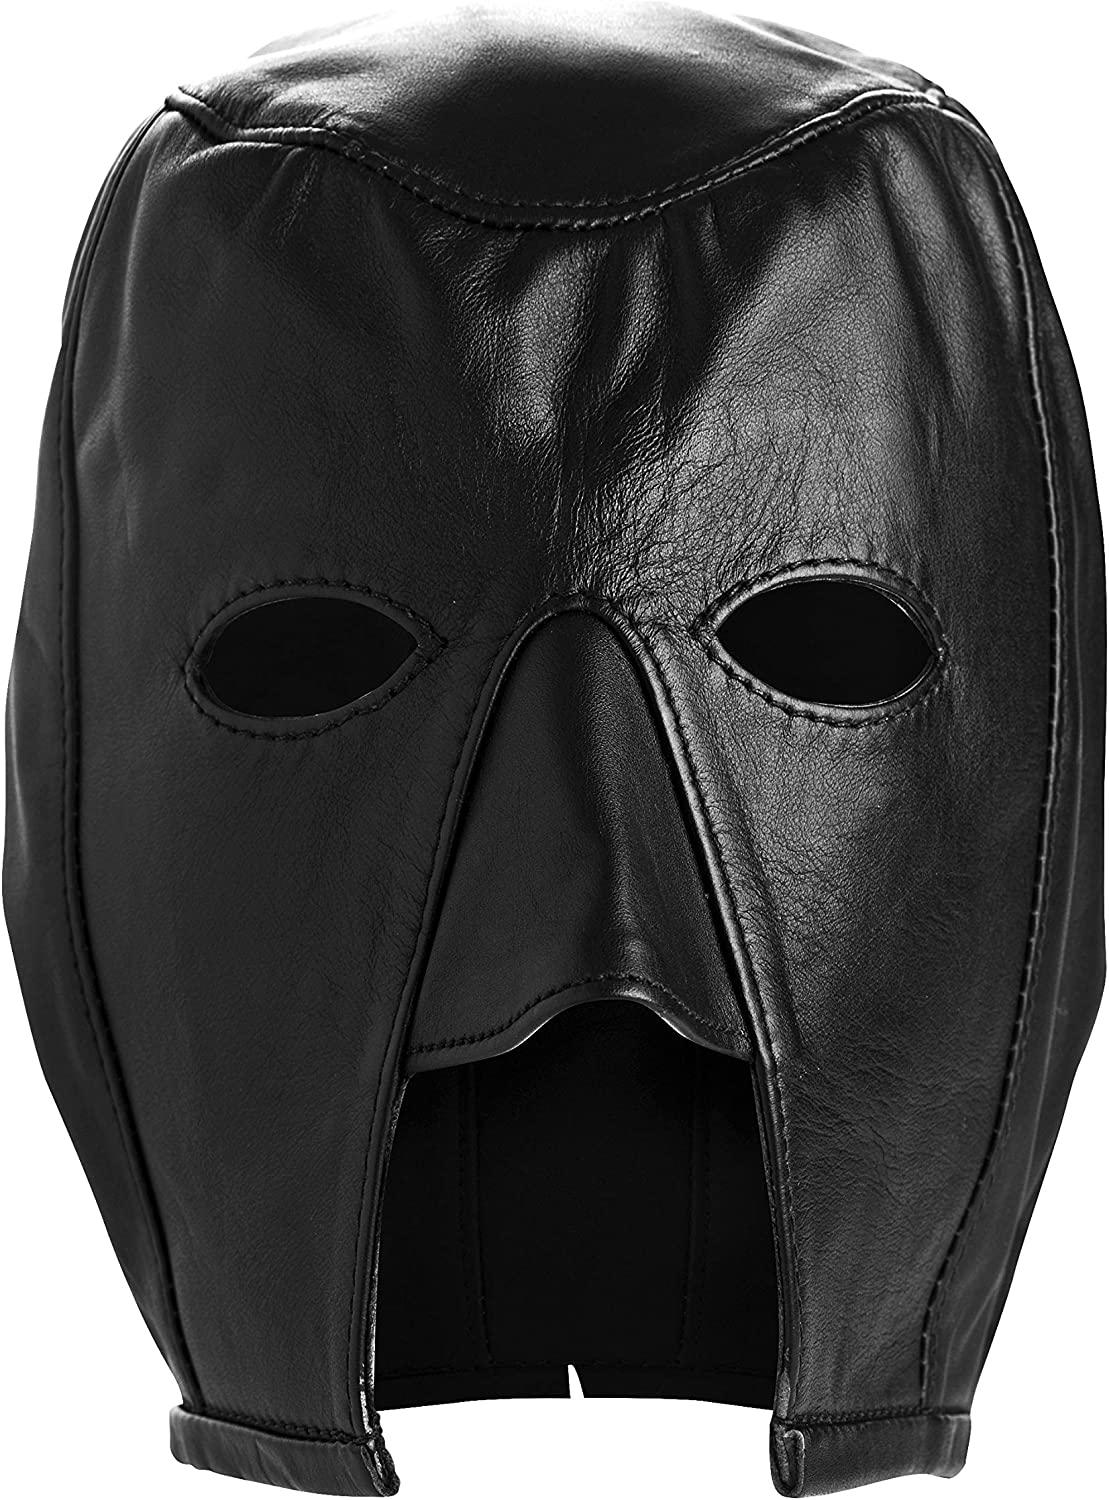 Strict Tulsa Mall Leather Executioners cheap Hood